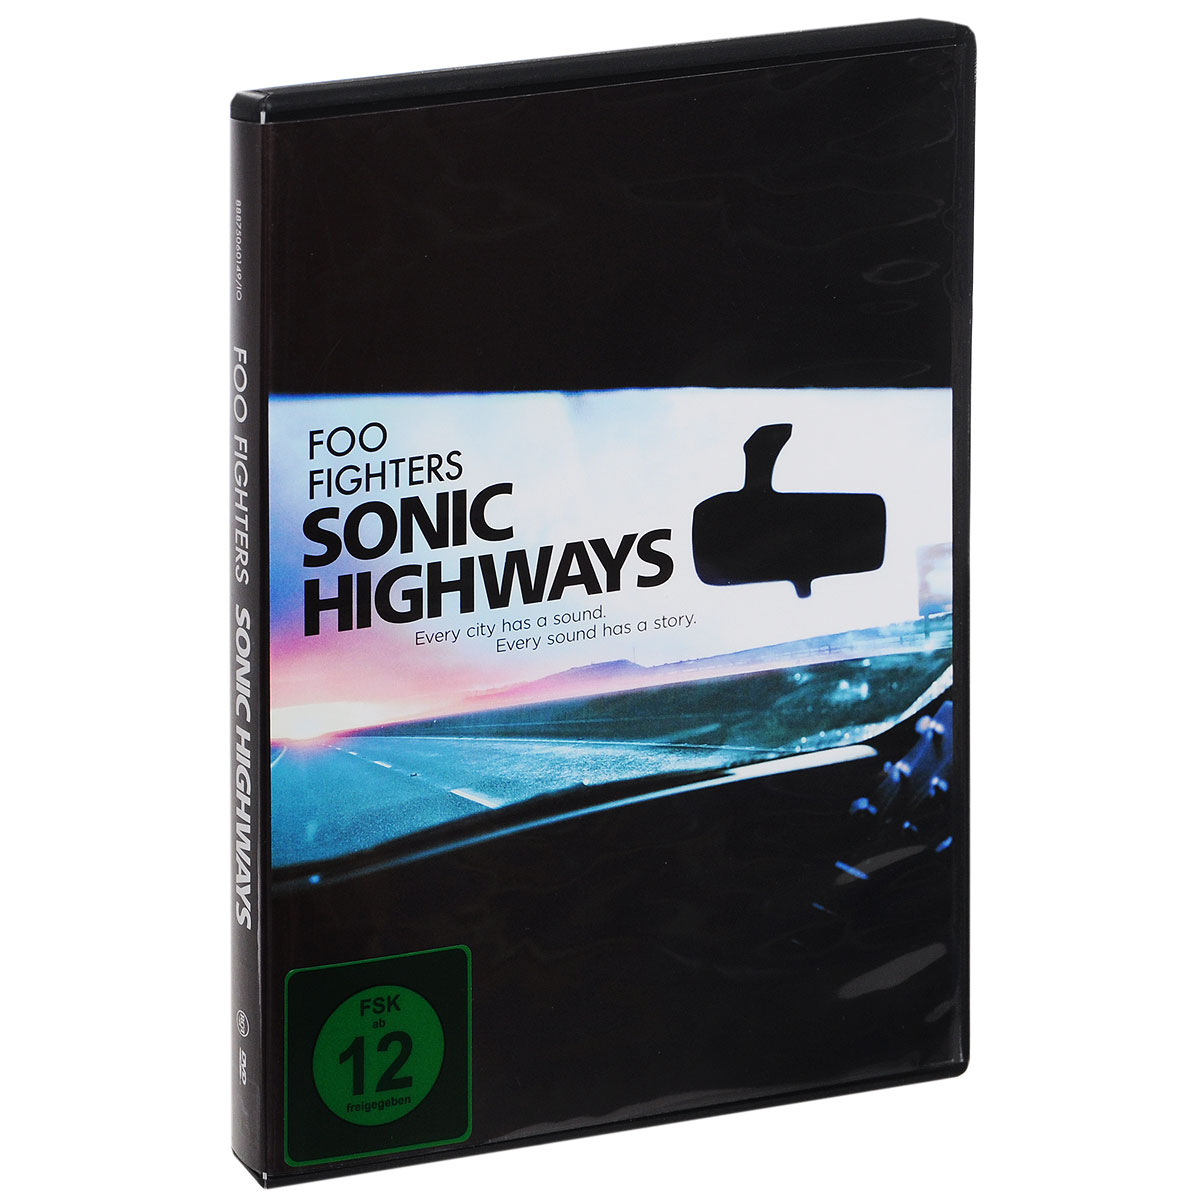 Foo Fighters: Sonic Highways (4 DVD) history of south indian musical forms